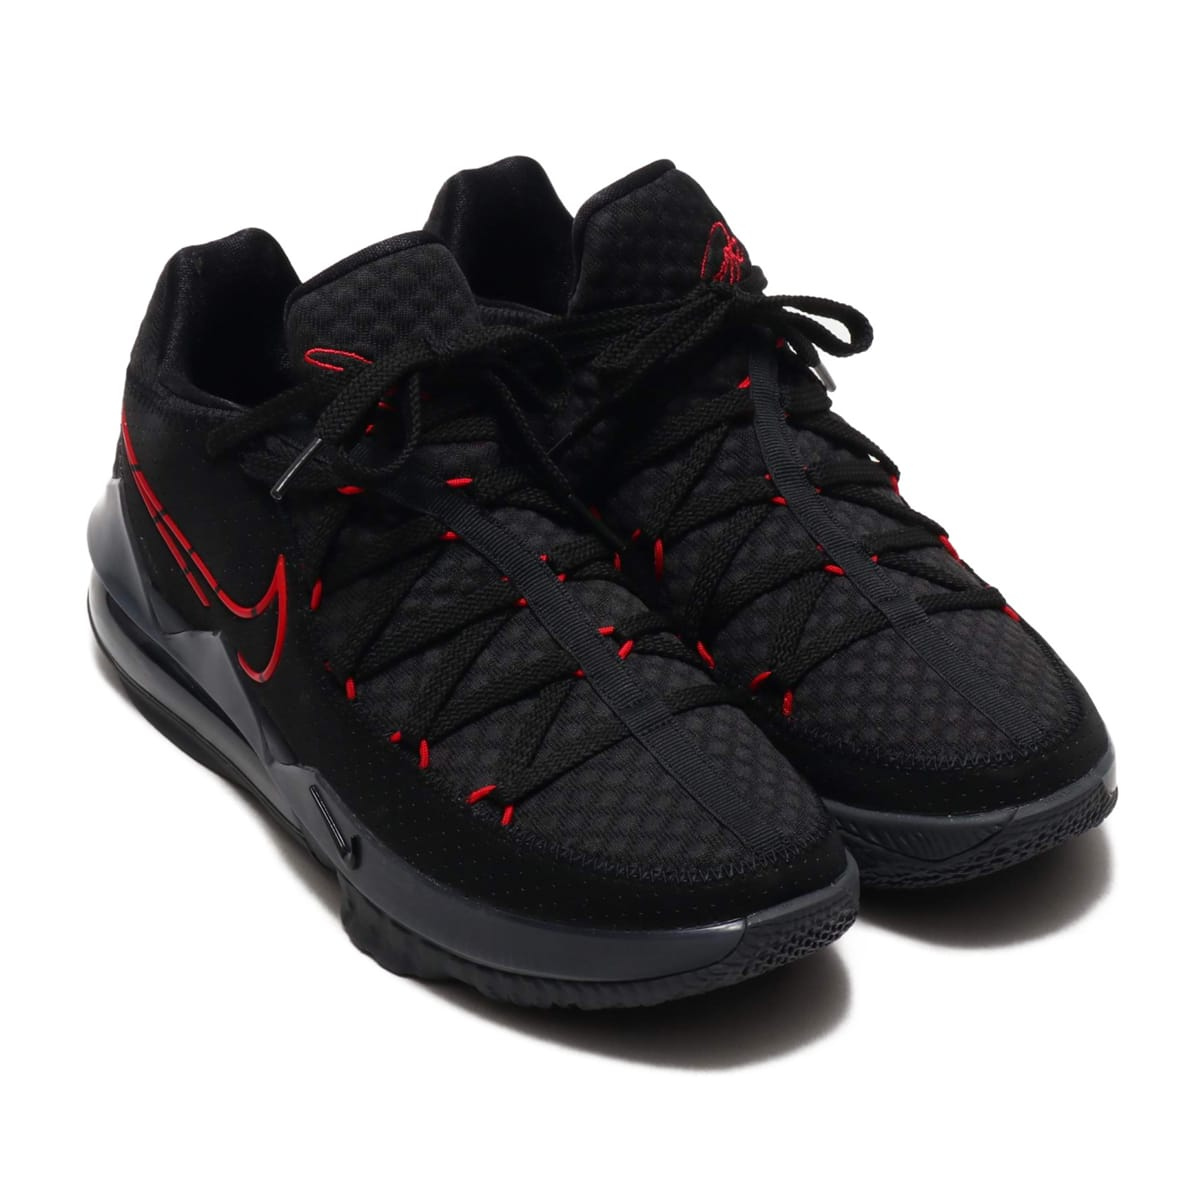 NIKE LEBRON XVII LOW BLACK/UNIVERSITY RED-DARK GREY 20SP-S_photo_large